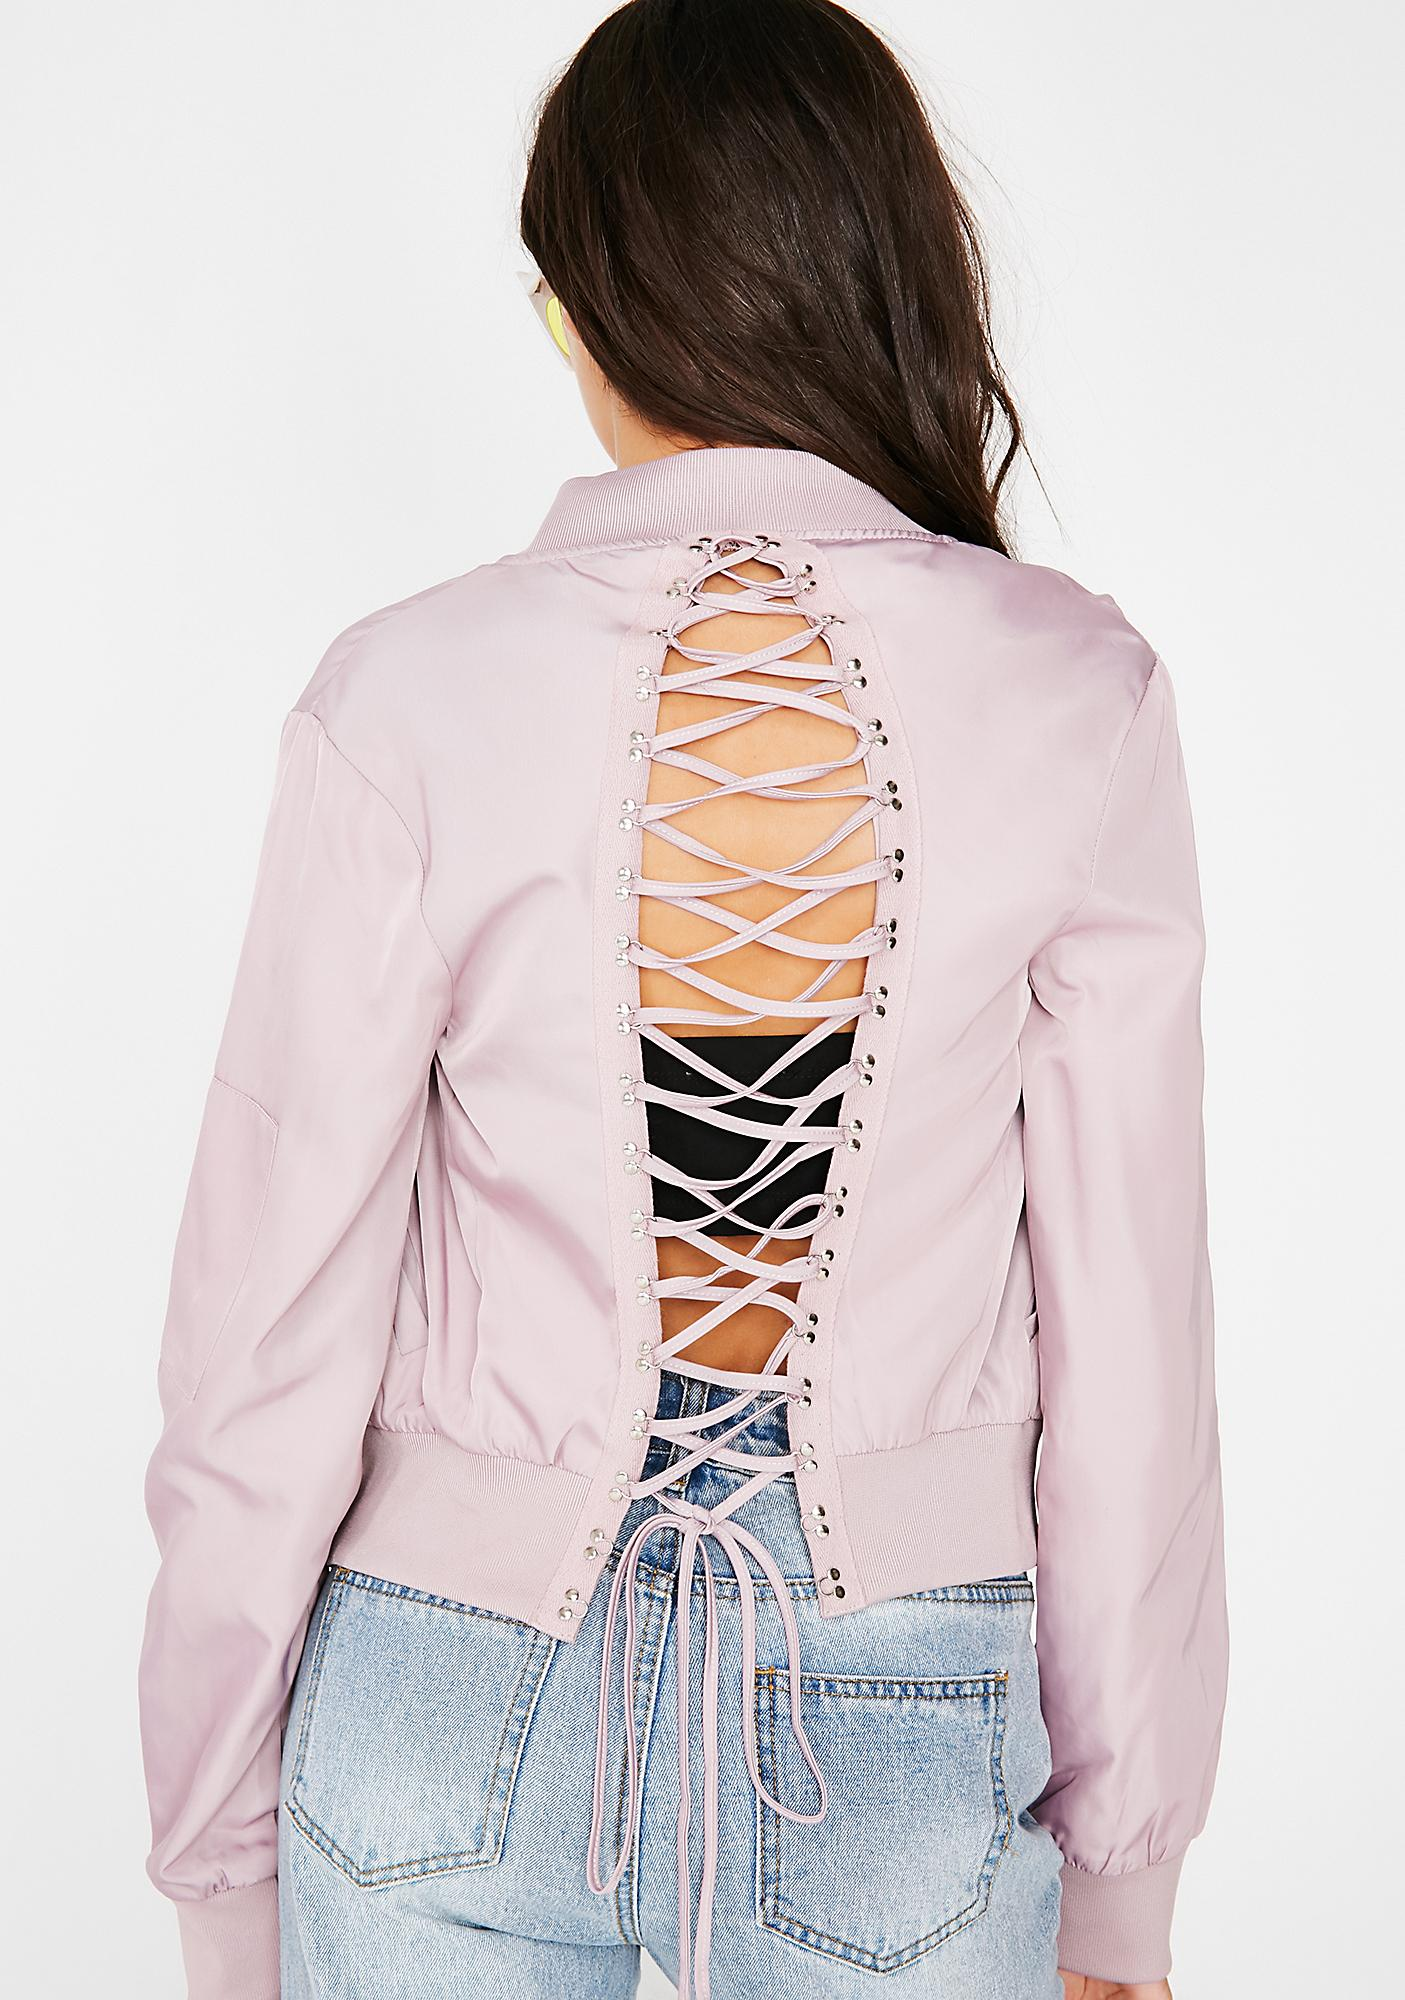 Hidden Agenda Lace-Up Jacket